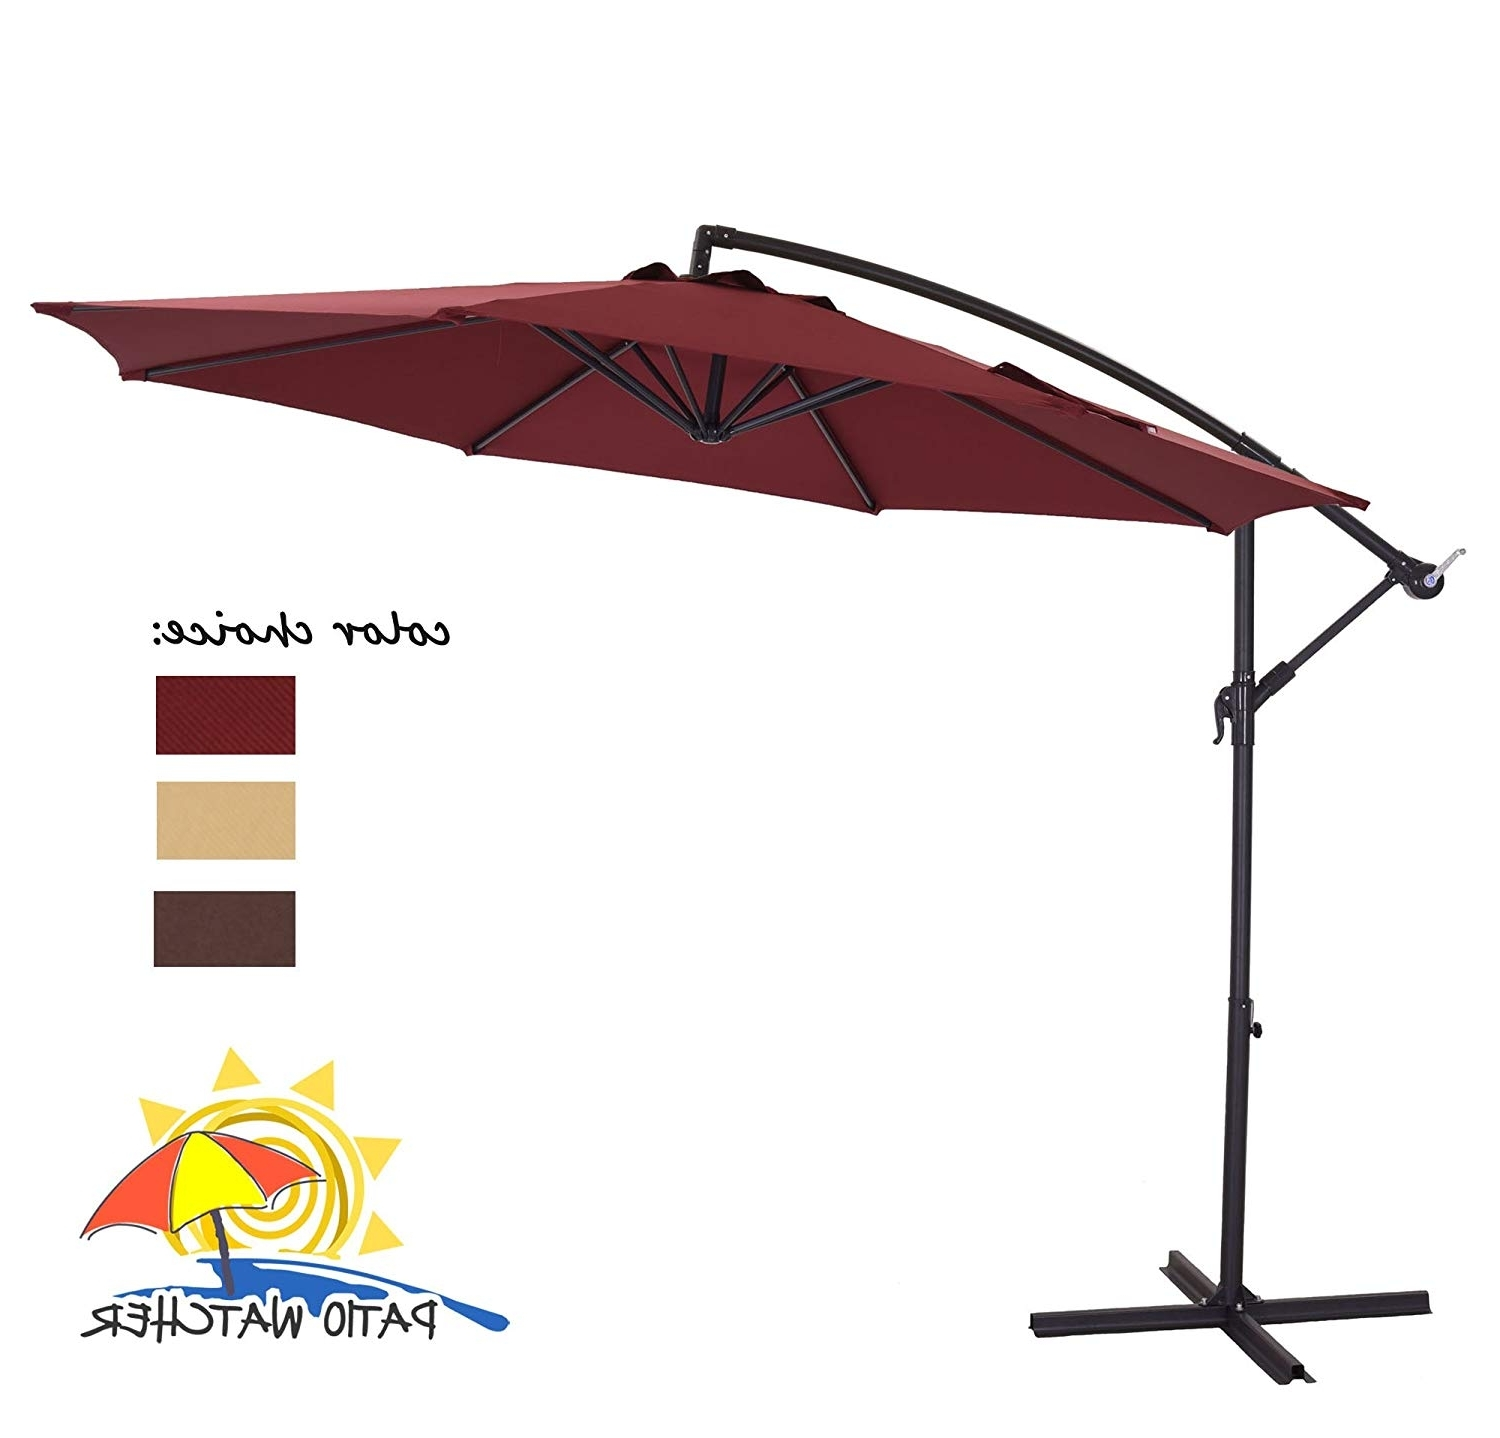 Well Known Eclipse Patio Umbrellas Intended For 50 Amazon Patio Umbrellas, Offset Umbrella Base Diy In Pelling Metal (View 10 of 20)